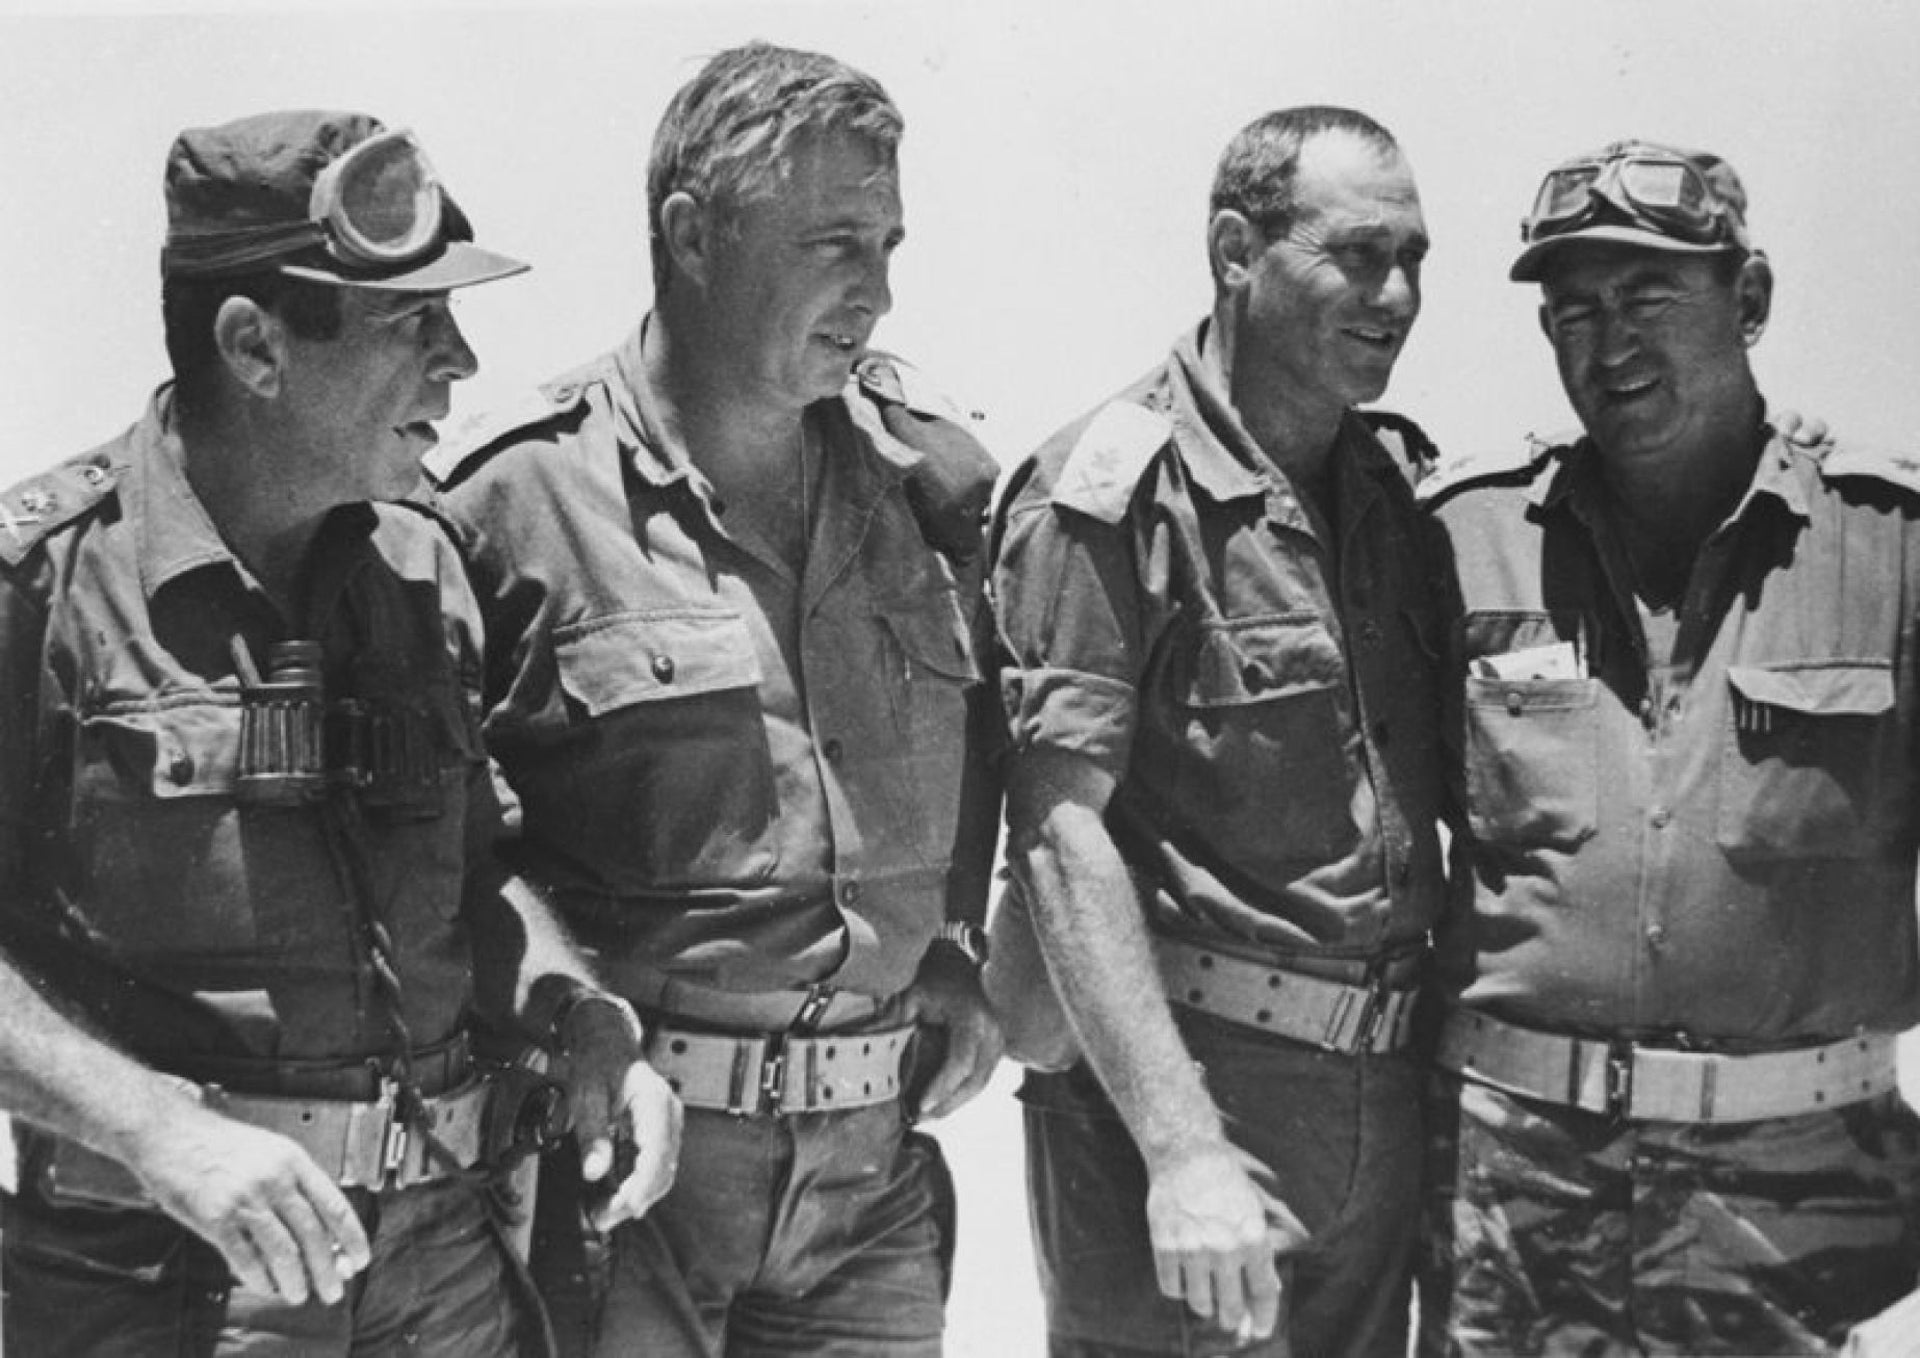 Southern Command division commanders, including Ariel Sharon second from left, June 6, 1967.